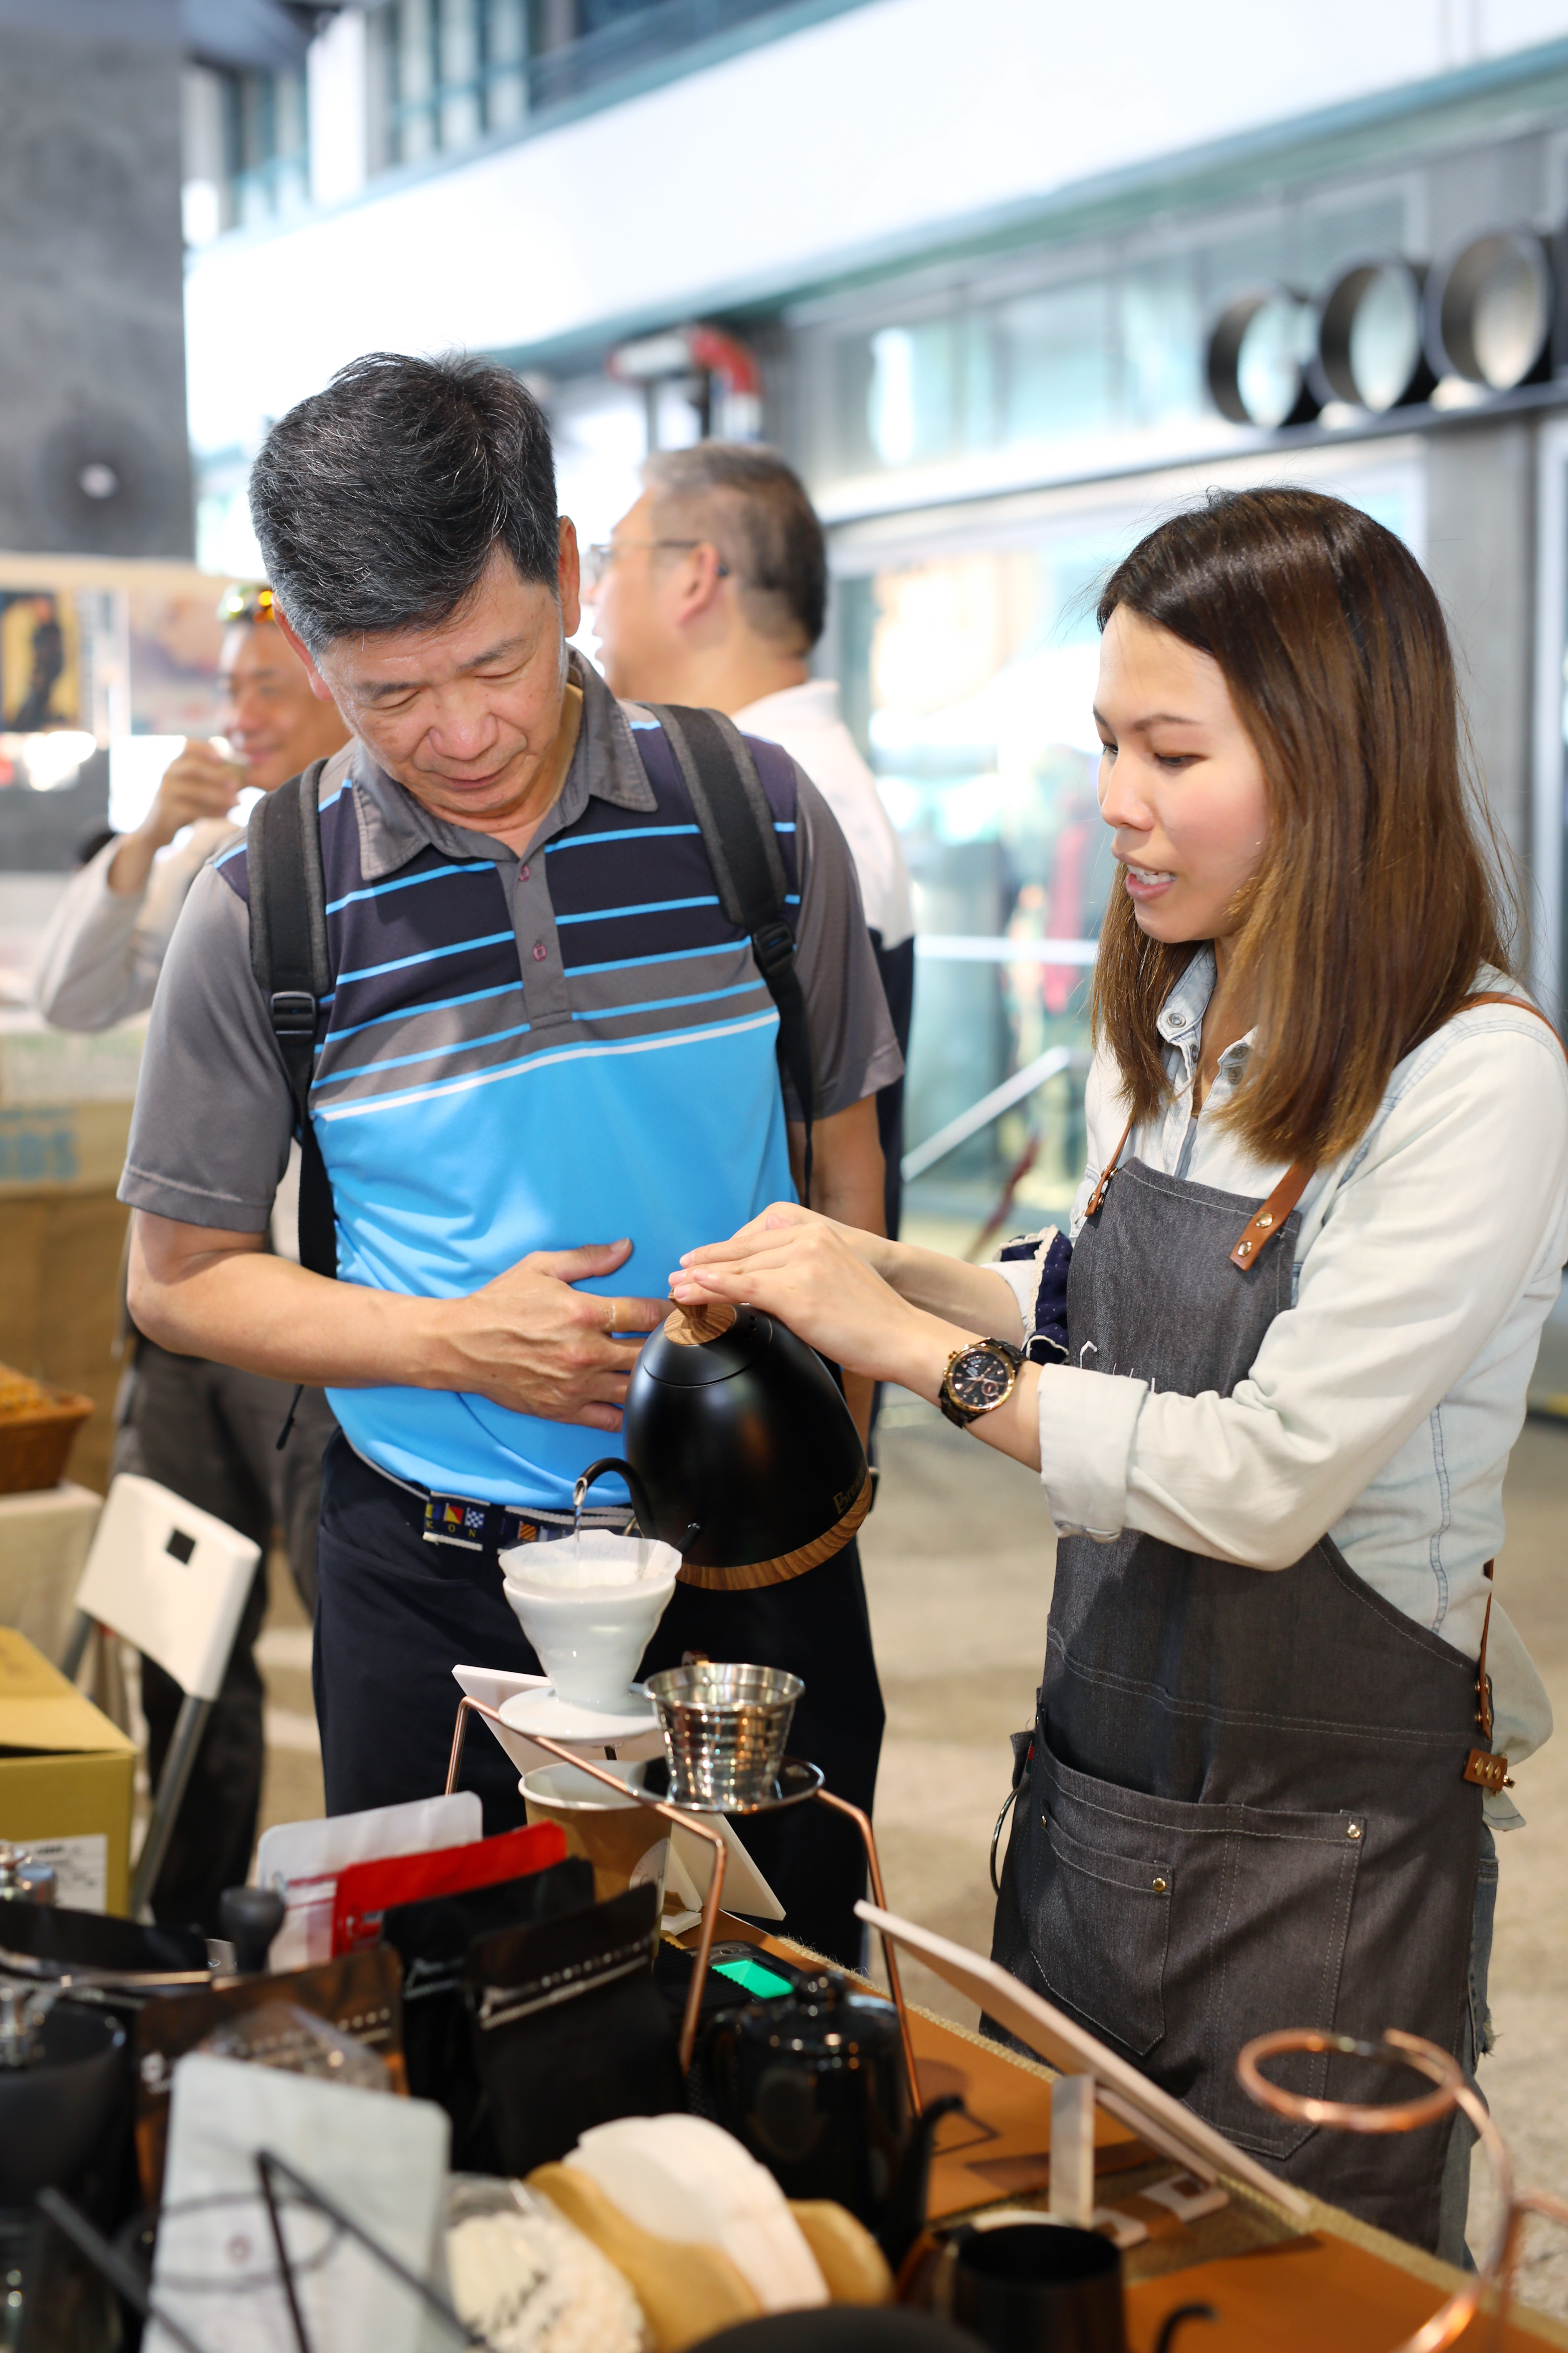 Introducing coffee bean processing